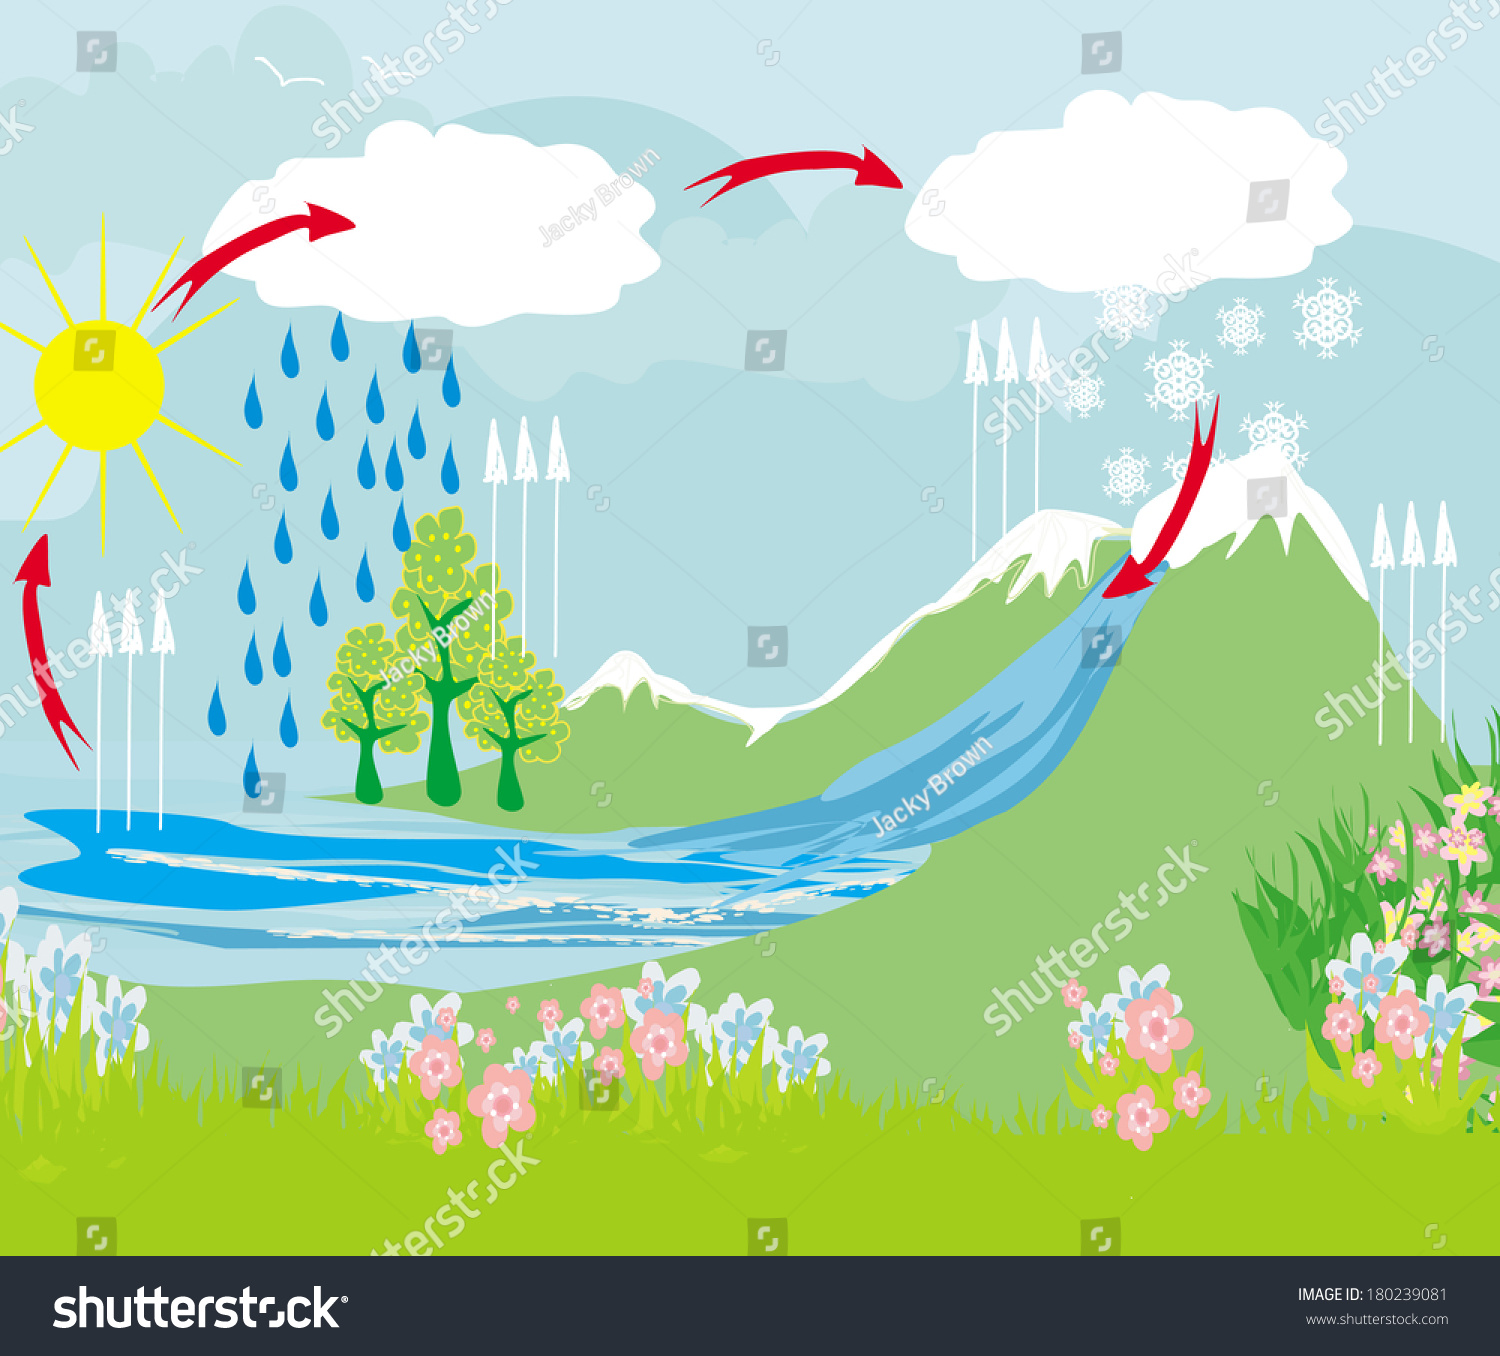 Cycle Water Nature Environment Stock Vector